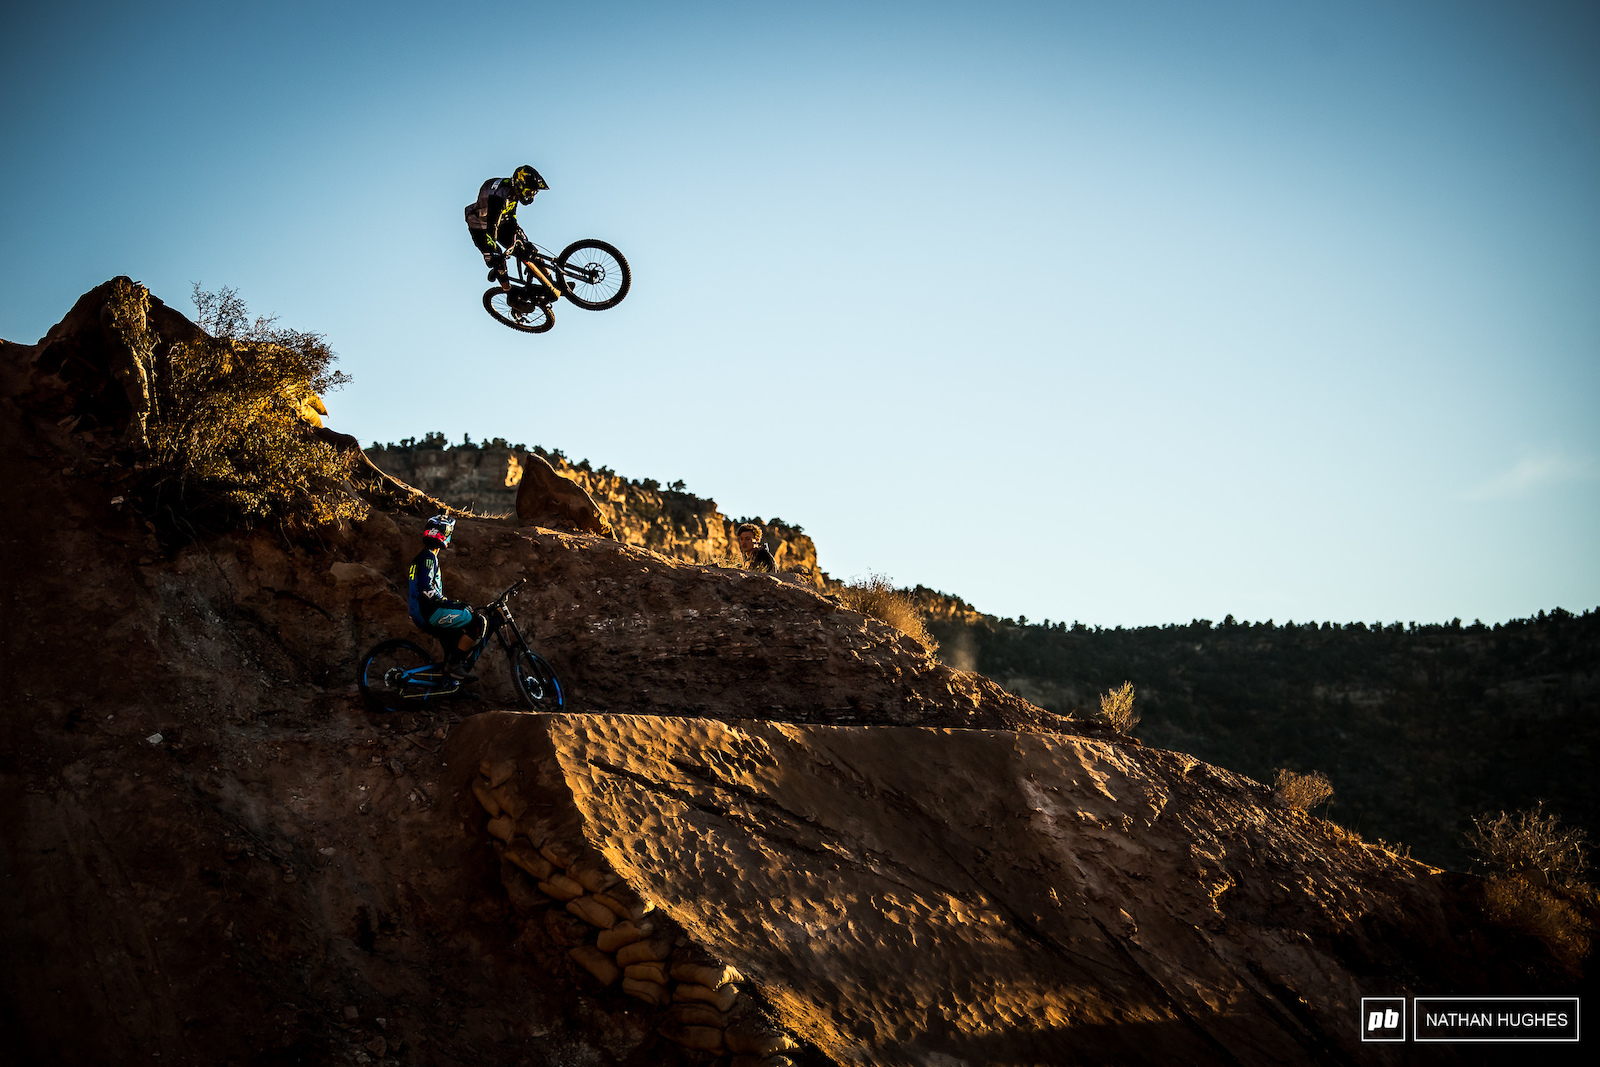 Sorge boosts the ridgeline hip shared with Aggy.